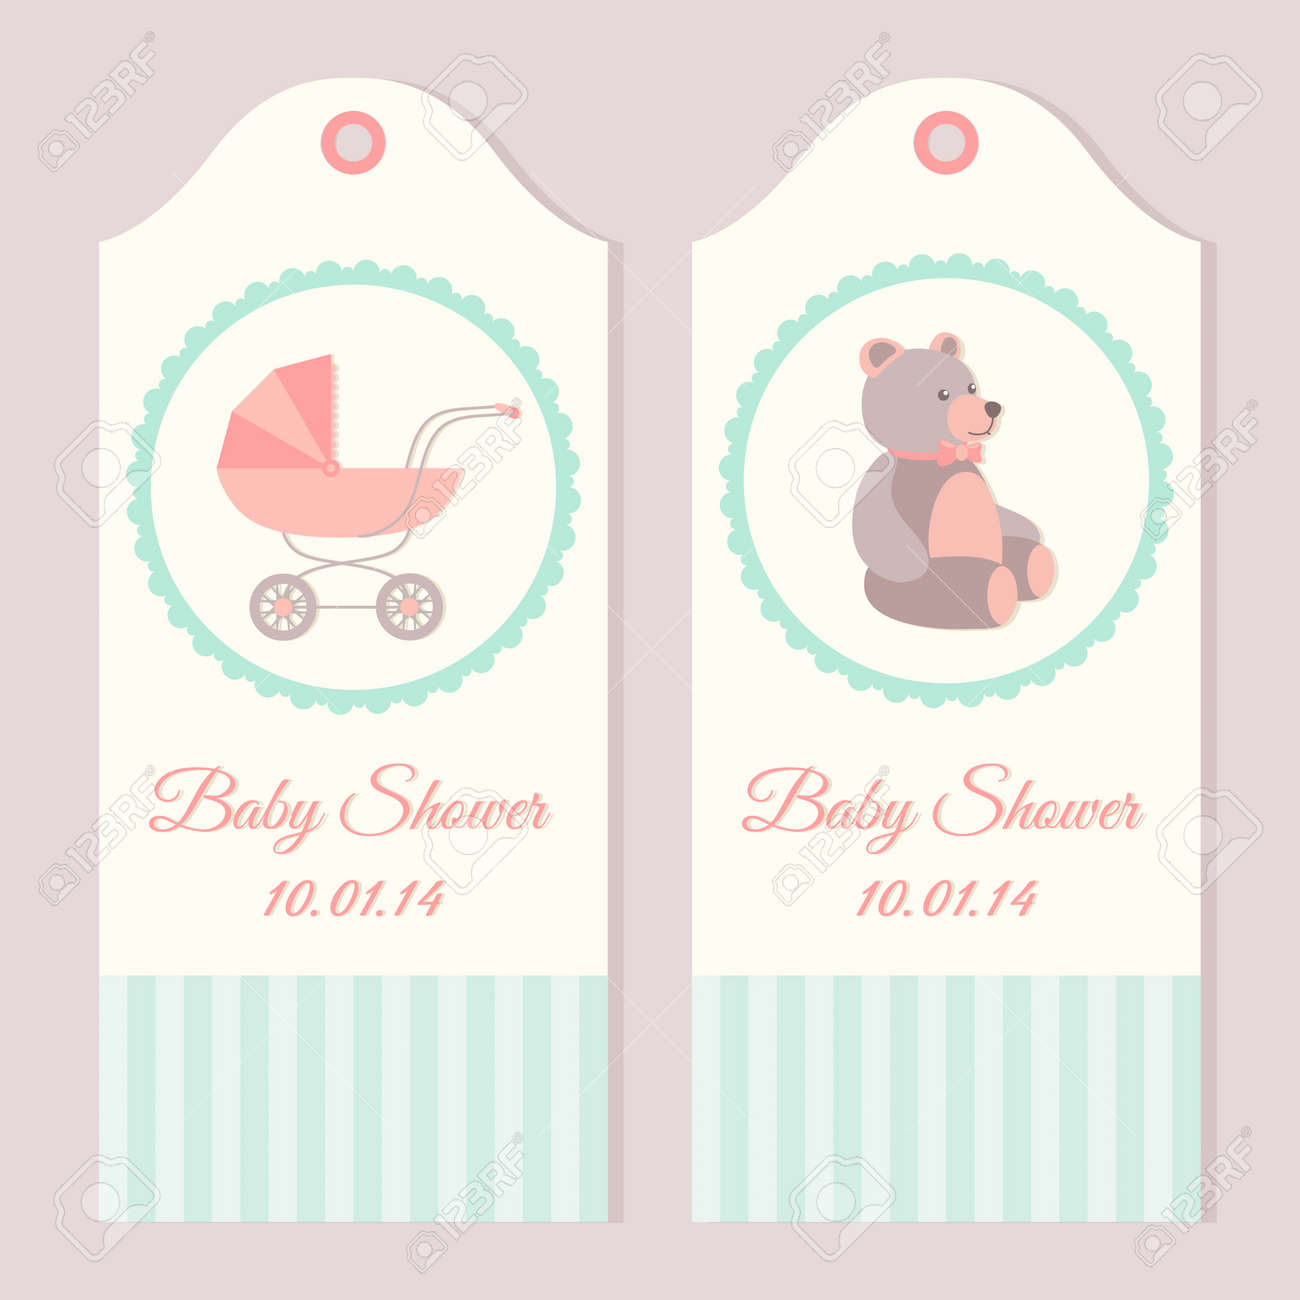 Baby Shower Invitation Card Templates With Stroller And Teddy ...